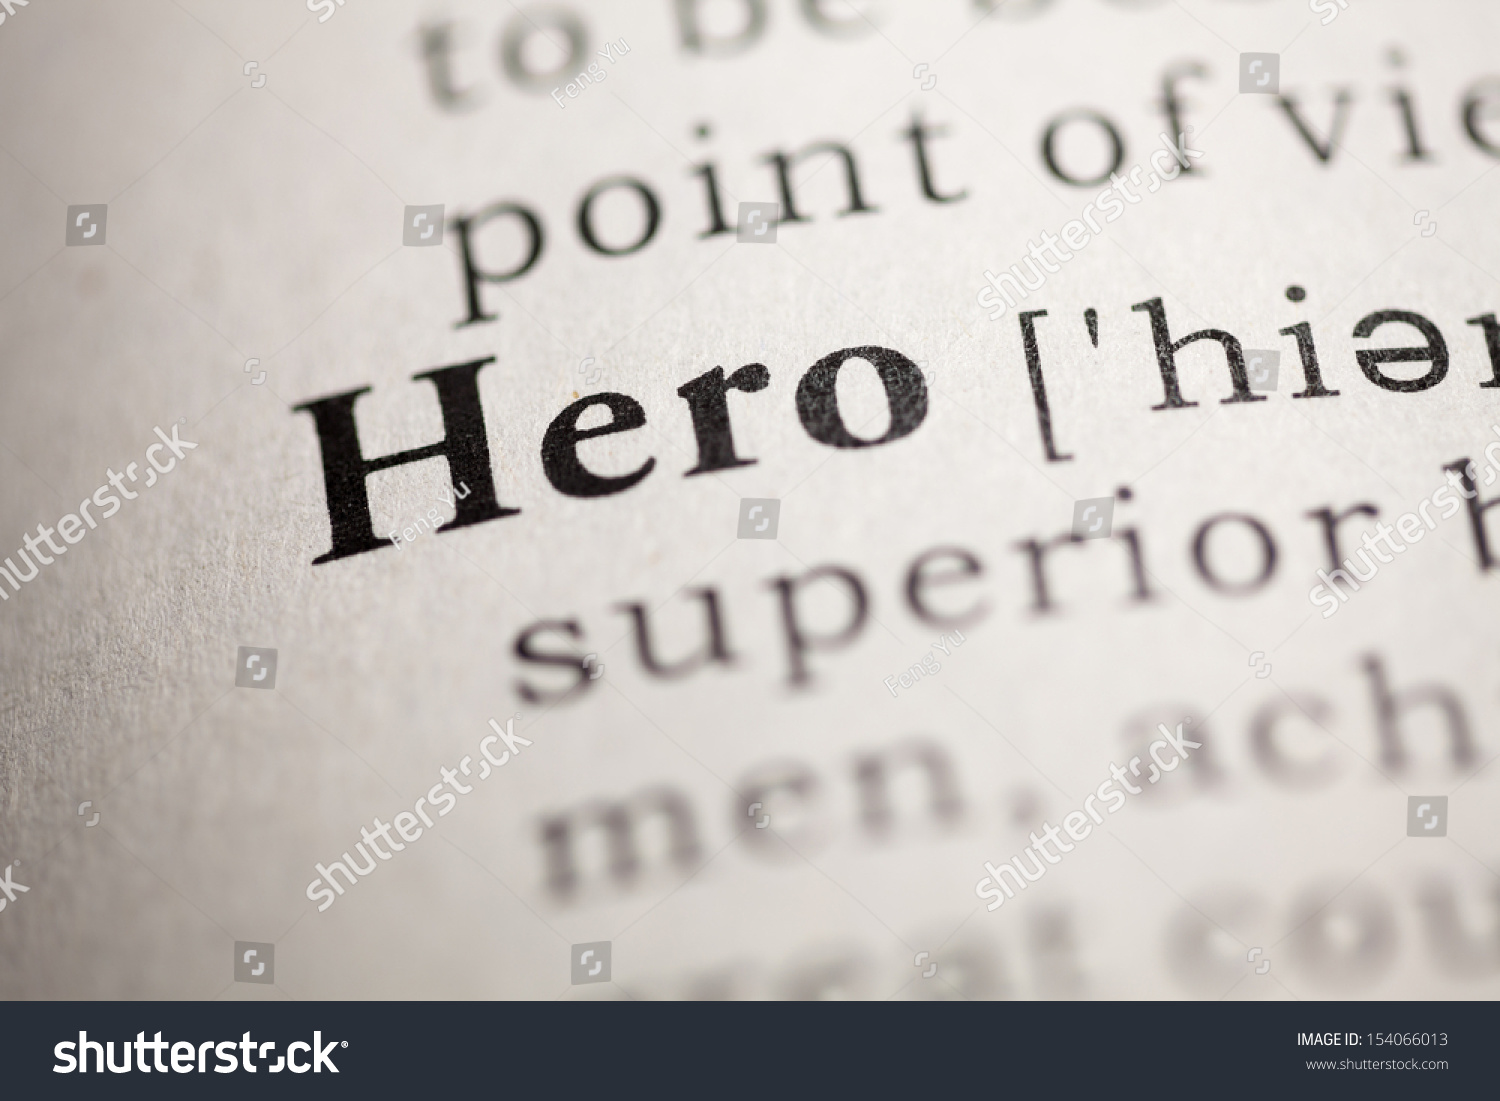 The meaning of the word hero today